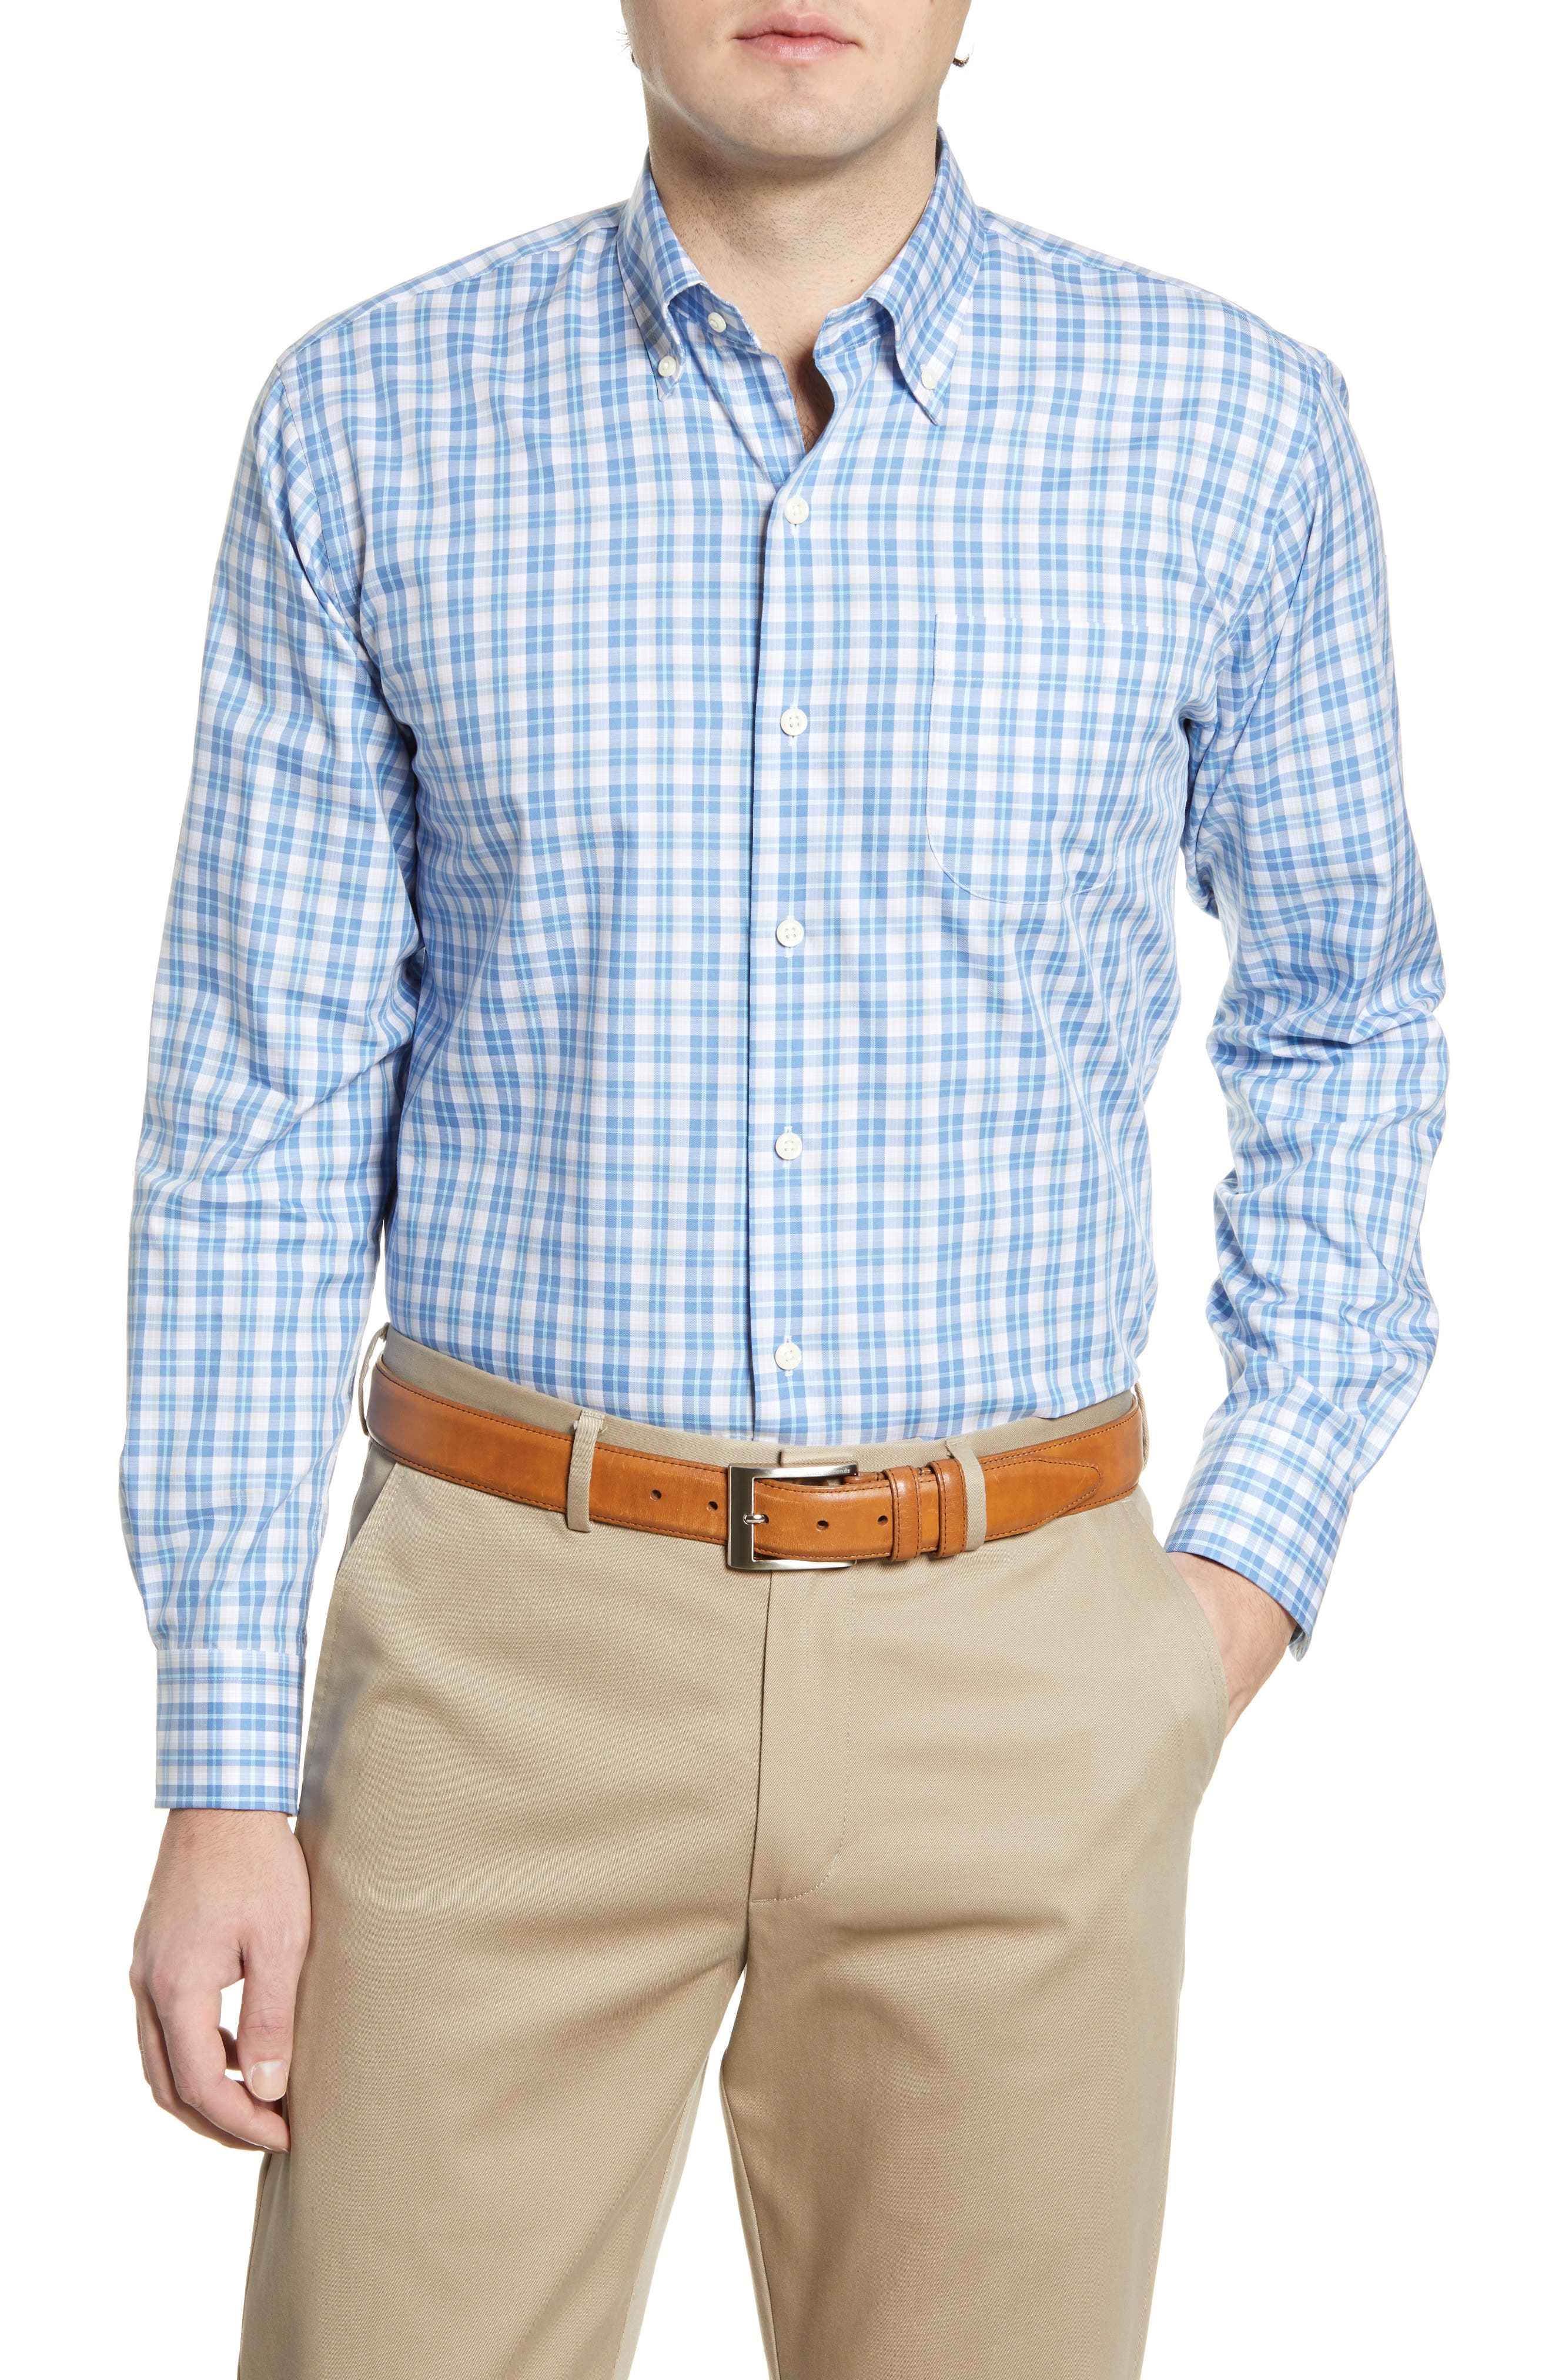 Charming plaid touches up a versatile shirt cut from lightweight cotton and fitted with a button-down collar and rounded, adjustable button cuffs. Style Name: Peter Millar Langley Grand Classic Fit Plaid Button-Down Shirt. Style Number: 5990404. Available in stores.